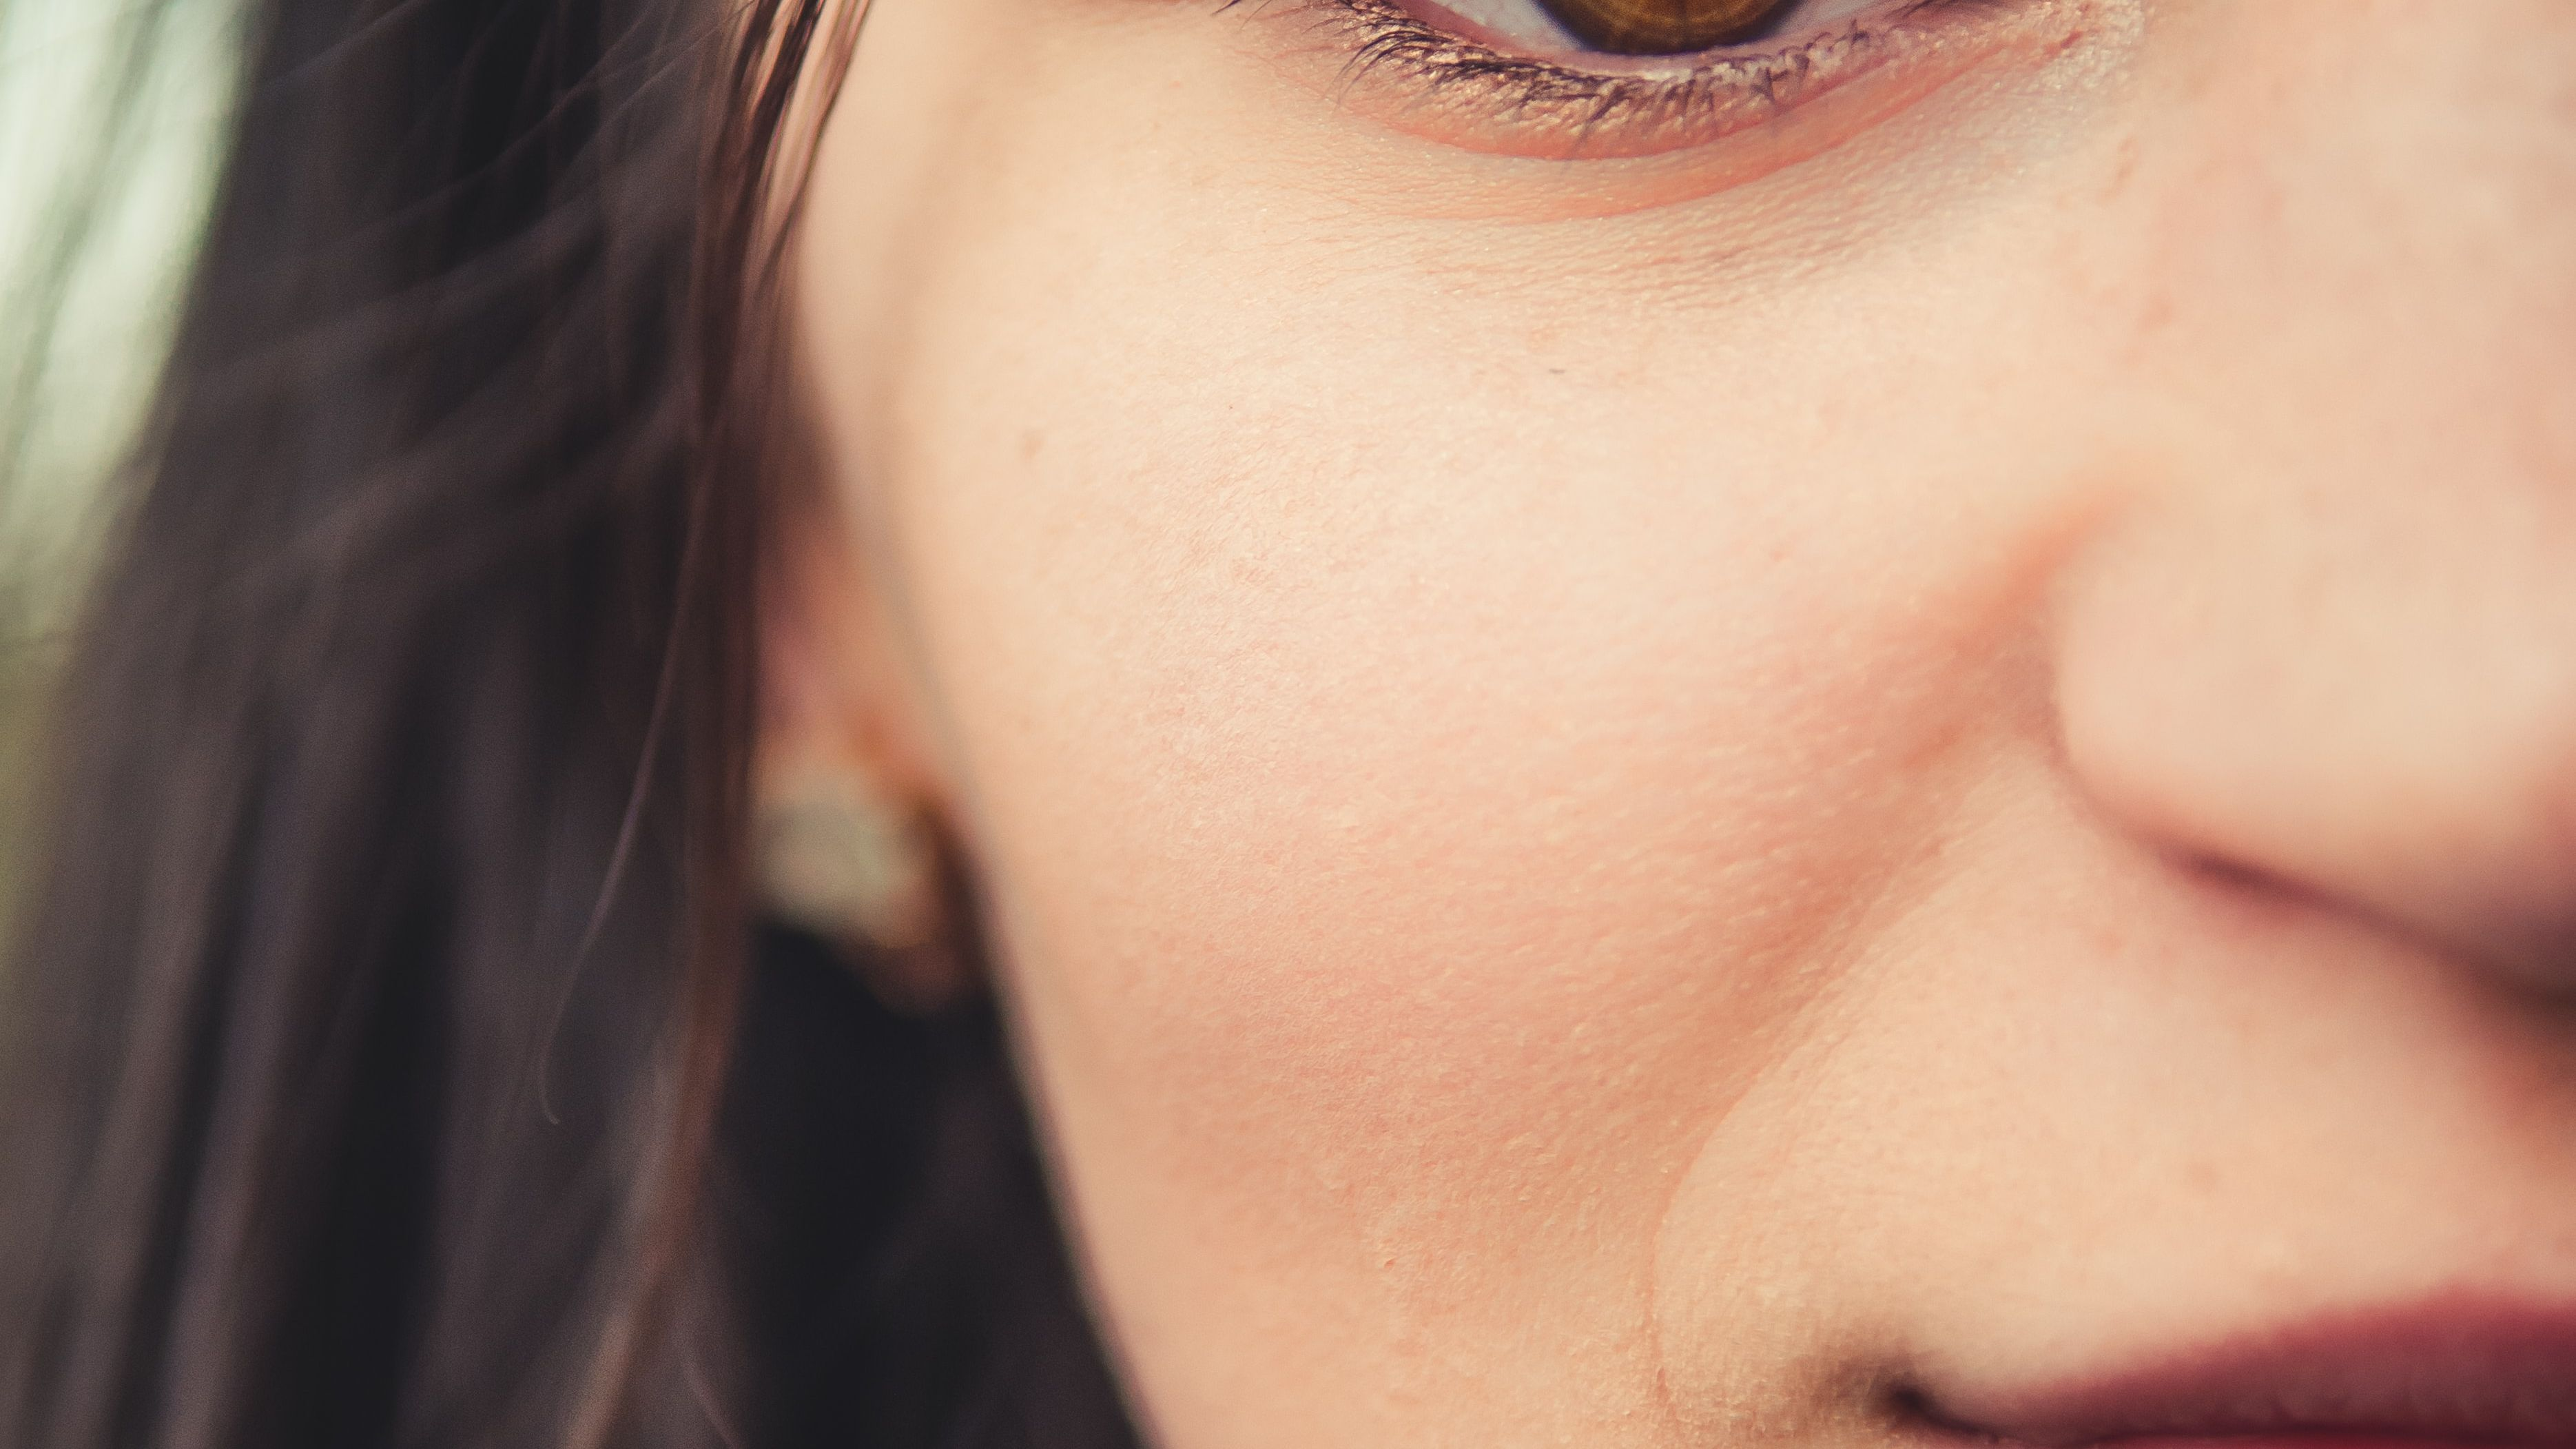 How To Almost Painlessly Wax Your Upper Lip